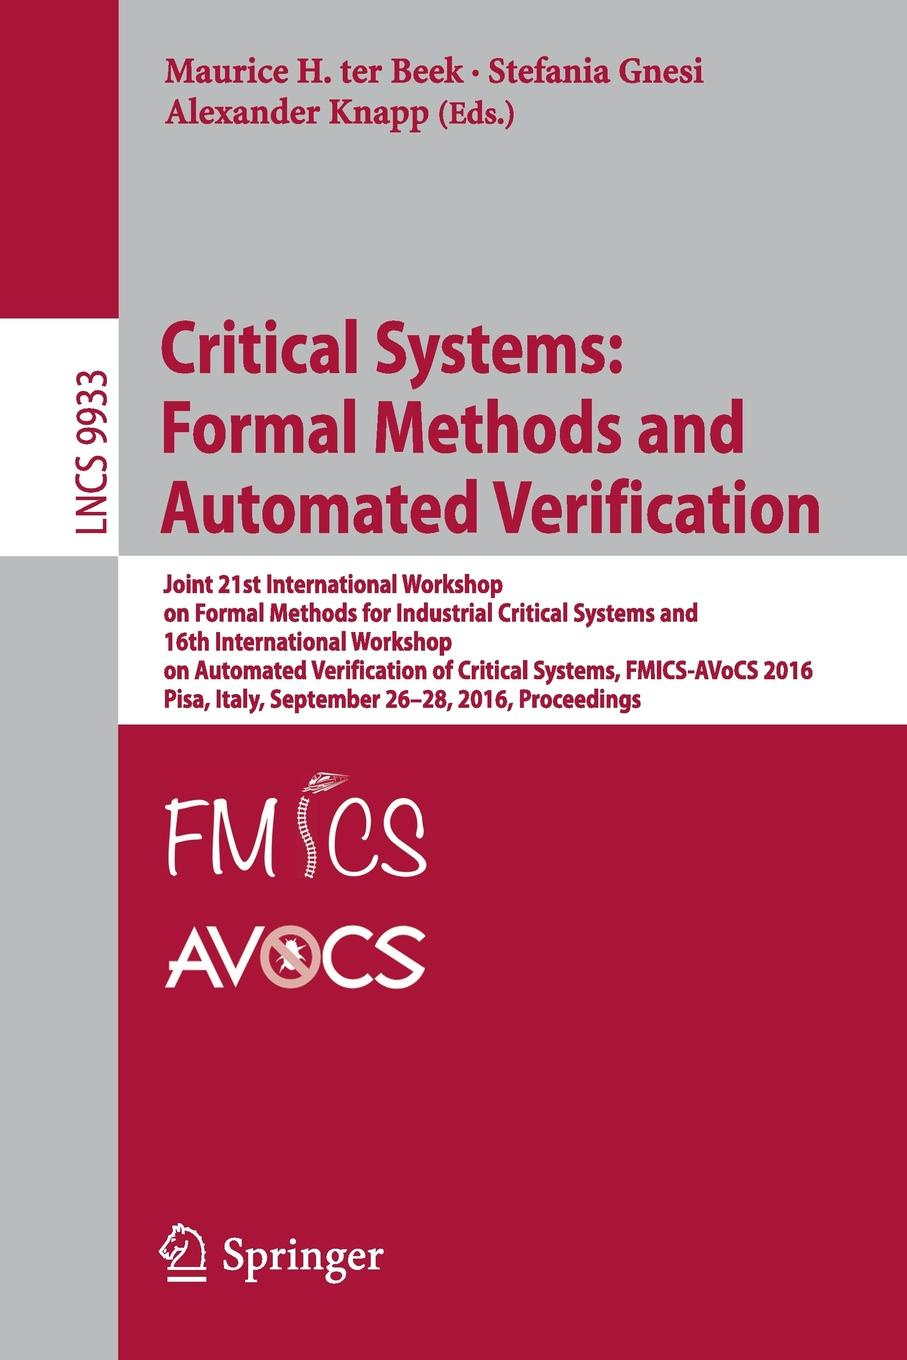 Critical Systems. Formal Methods and Automated Verification : Joint 21st International Workshop on Formal Methods for Industrial Critical Systems and 16th International Workshop on Automated Verification of Critical Systems, FMICS-AVoCS ... automated recognition of handwritten malayalam scripts